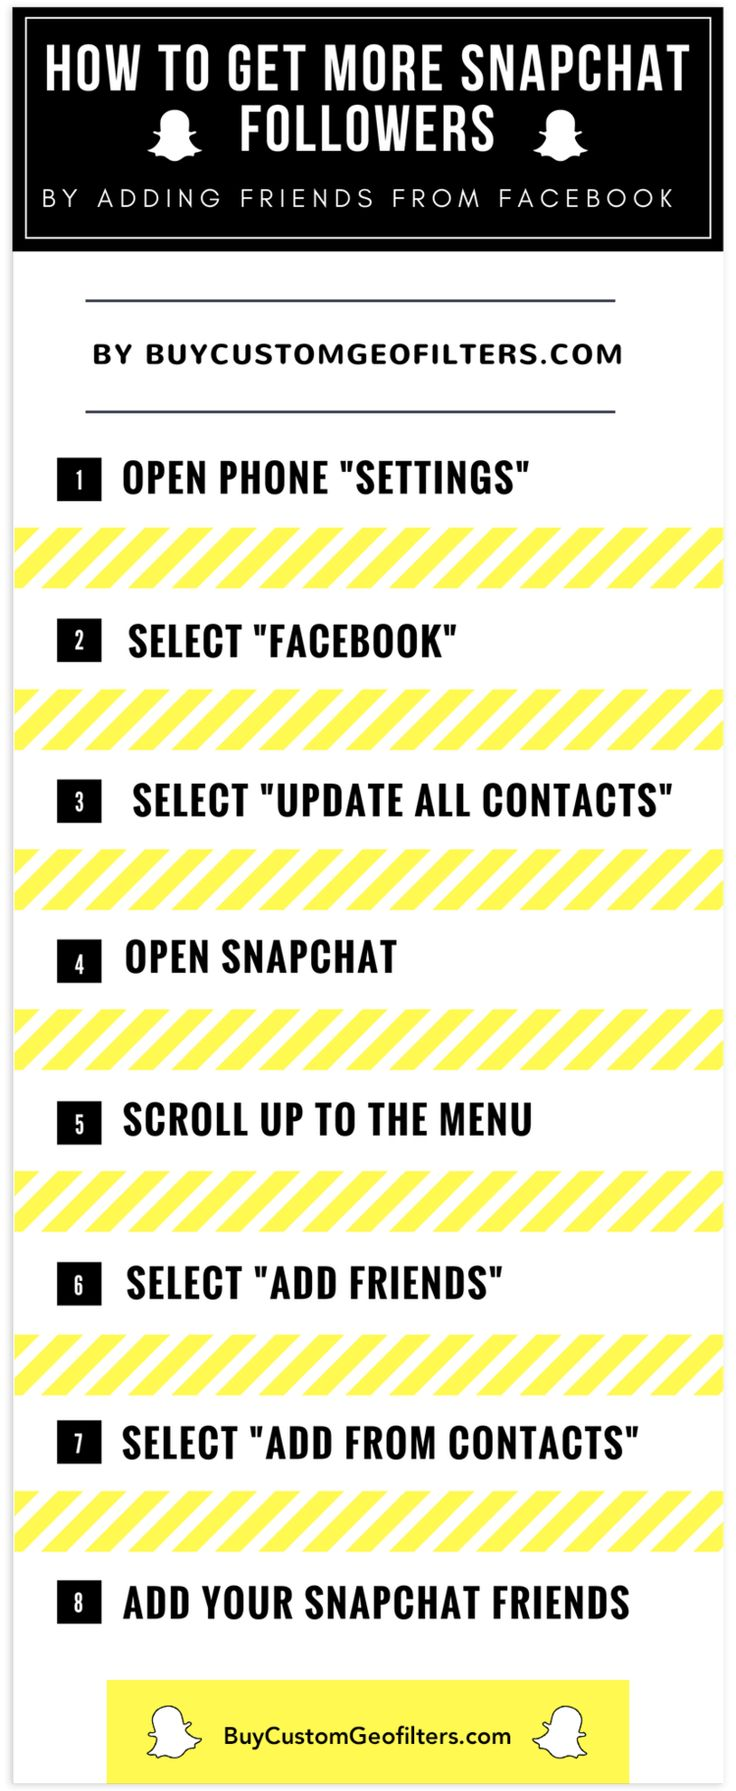 Snapchat sign up create account - How To Get More Snapchat Followers By Adding Friends From Facebook